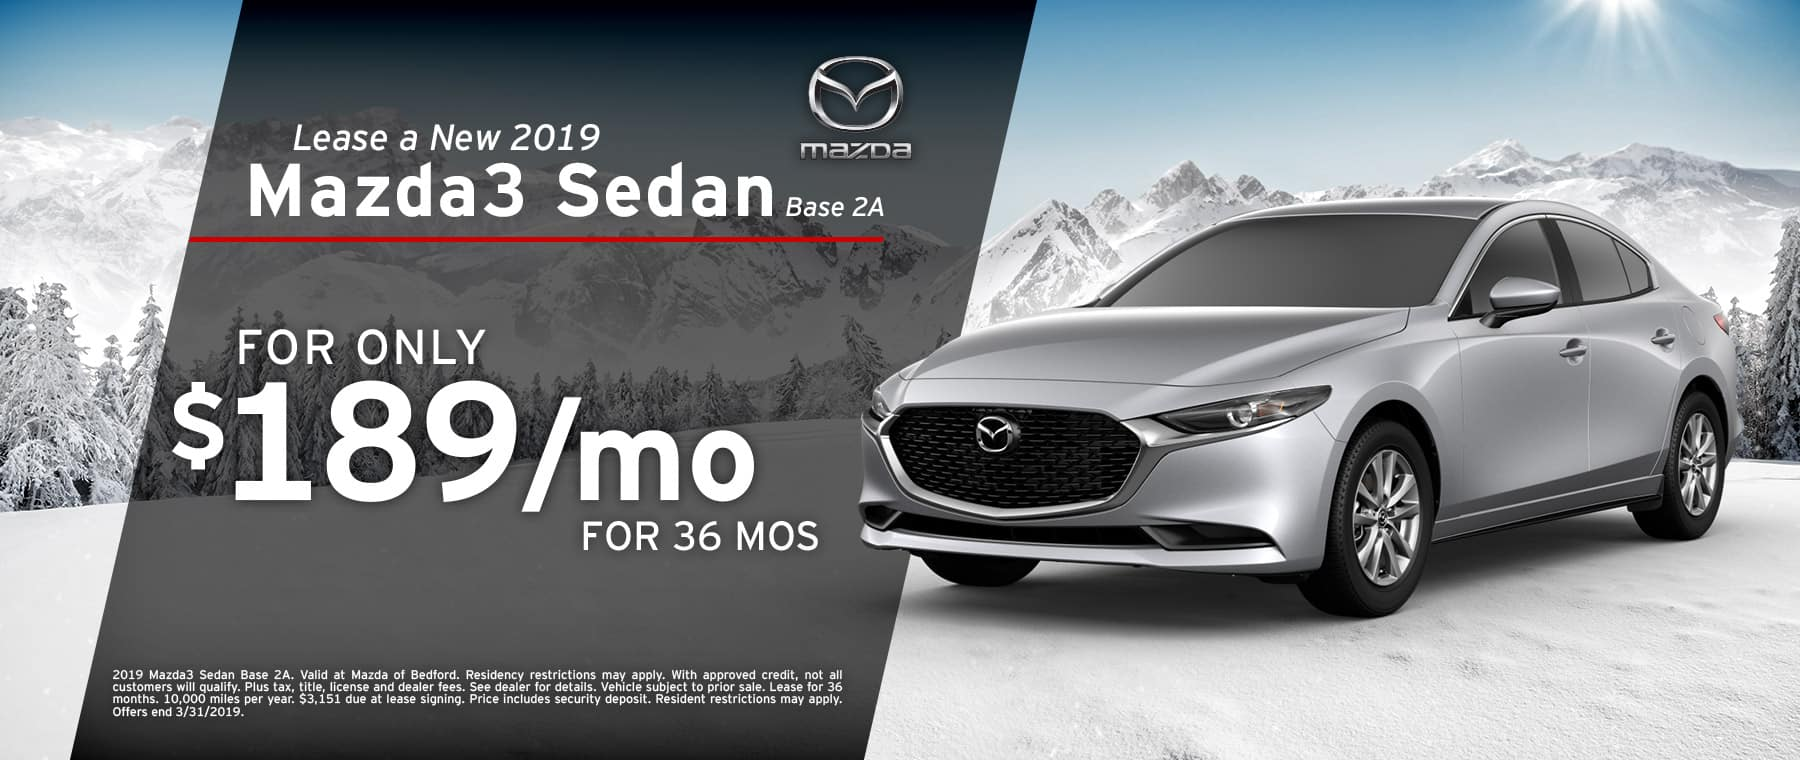 Save when you lease a 2019 Mazda3 Sedan at Mazda of Bedford in Ohio